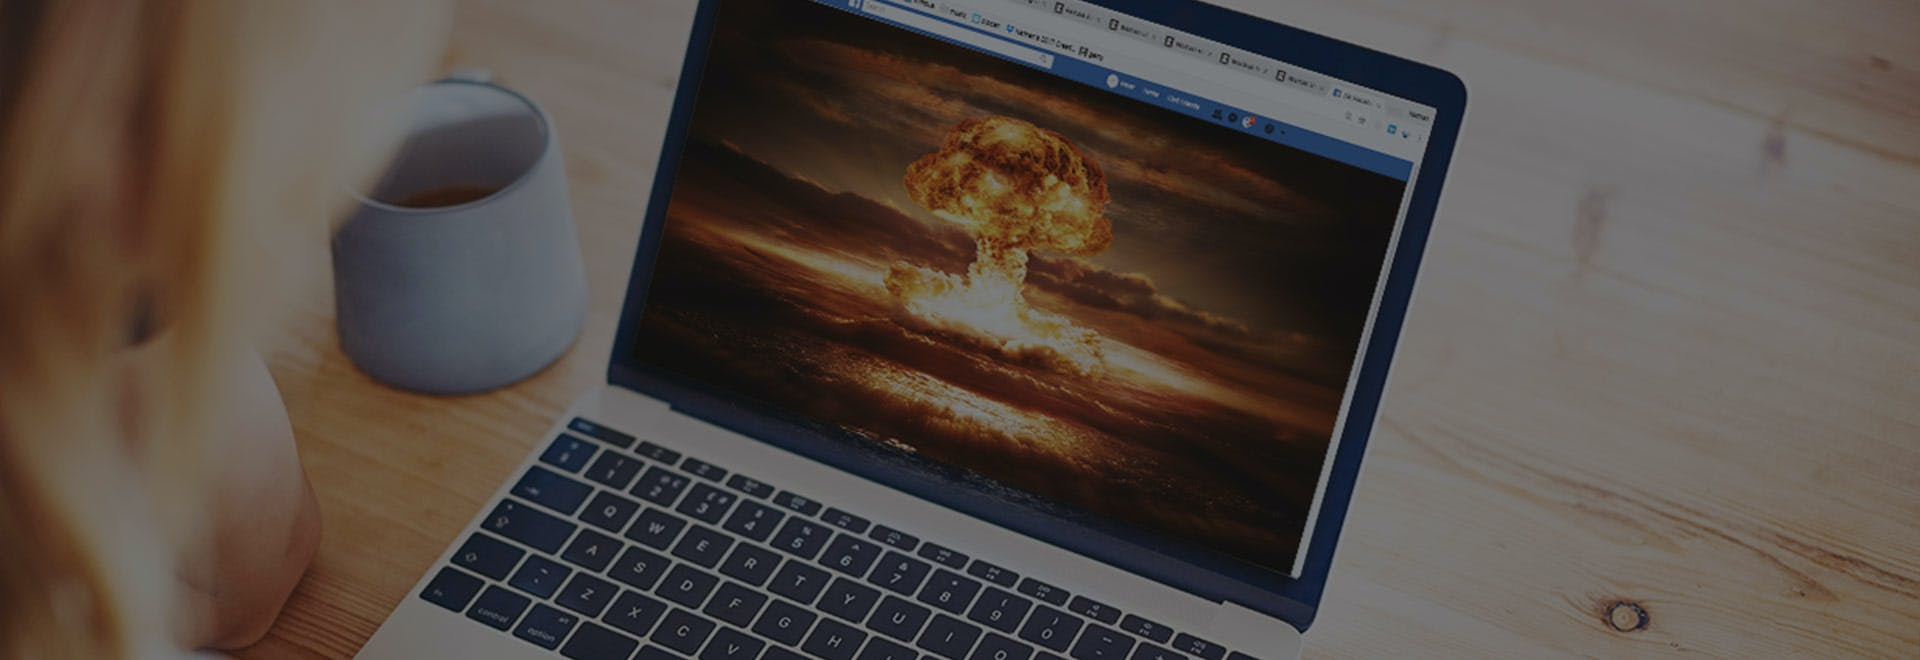 laptop with bomb explosion image on screen